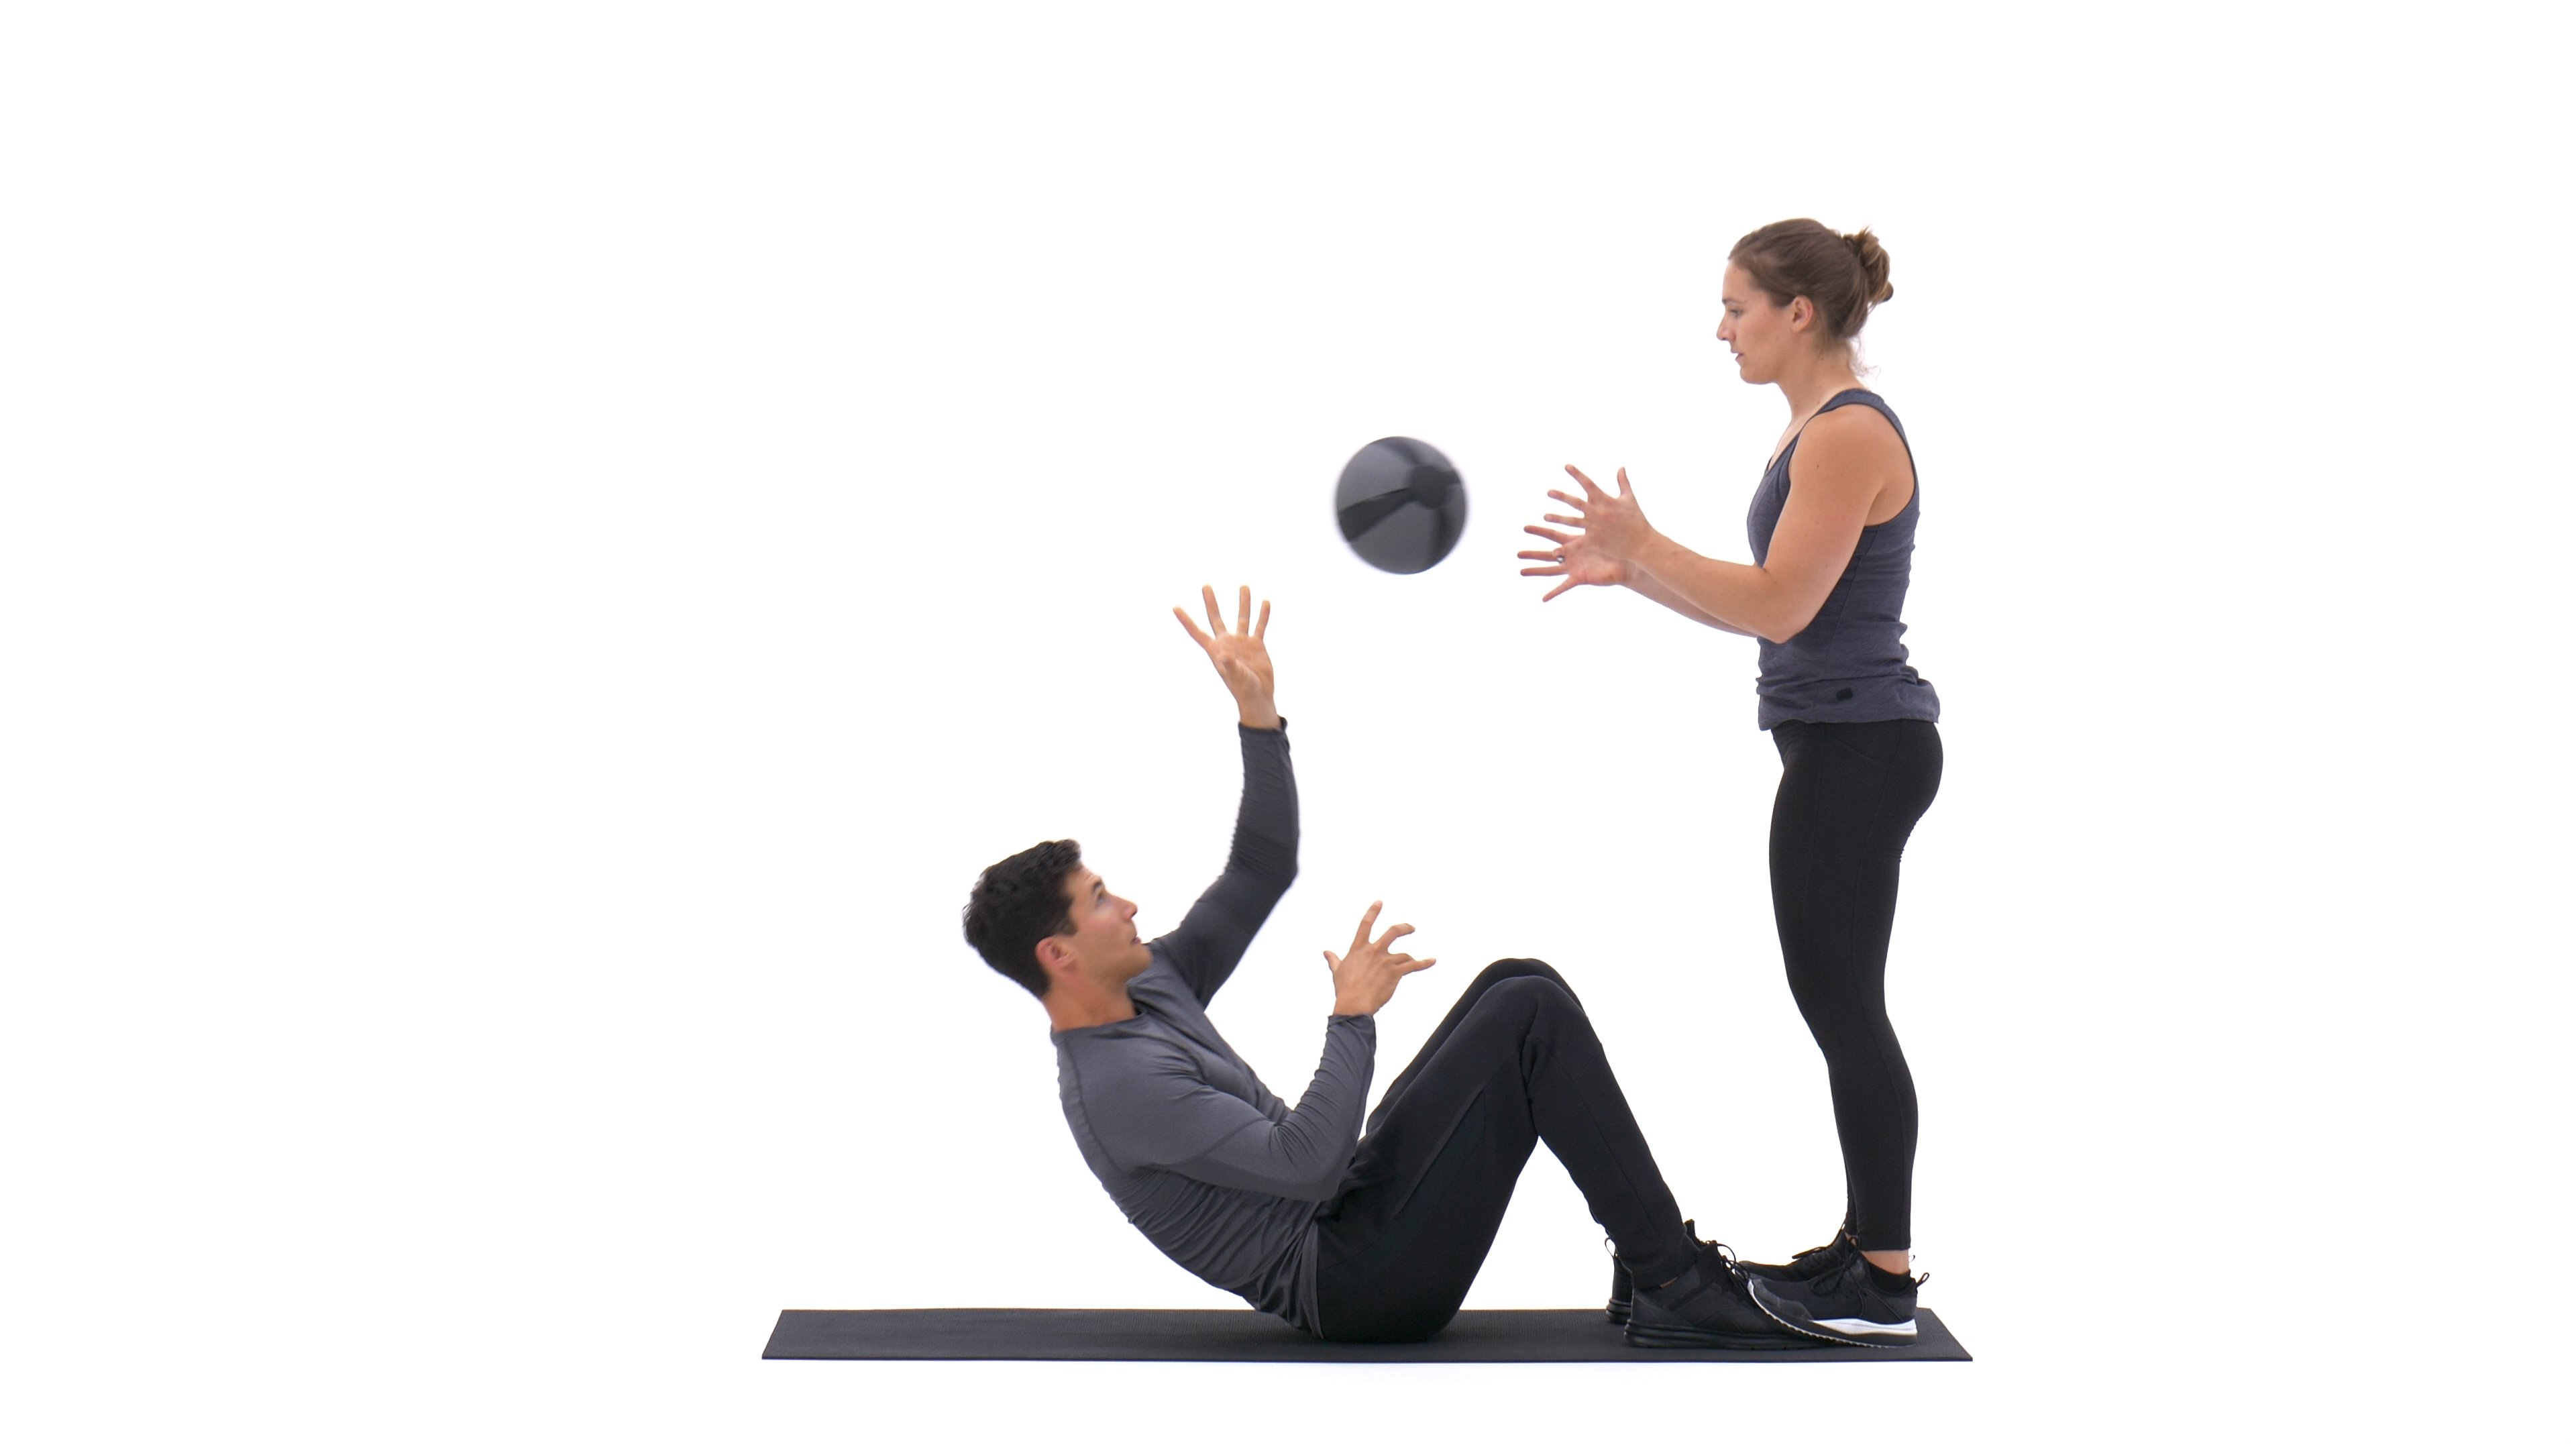 Sit-up with single-arm overhand throw image